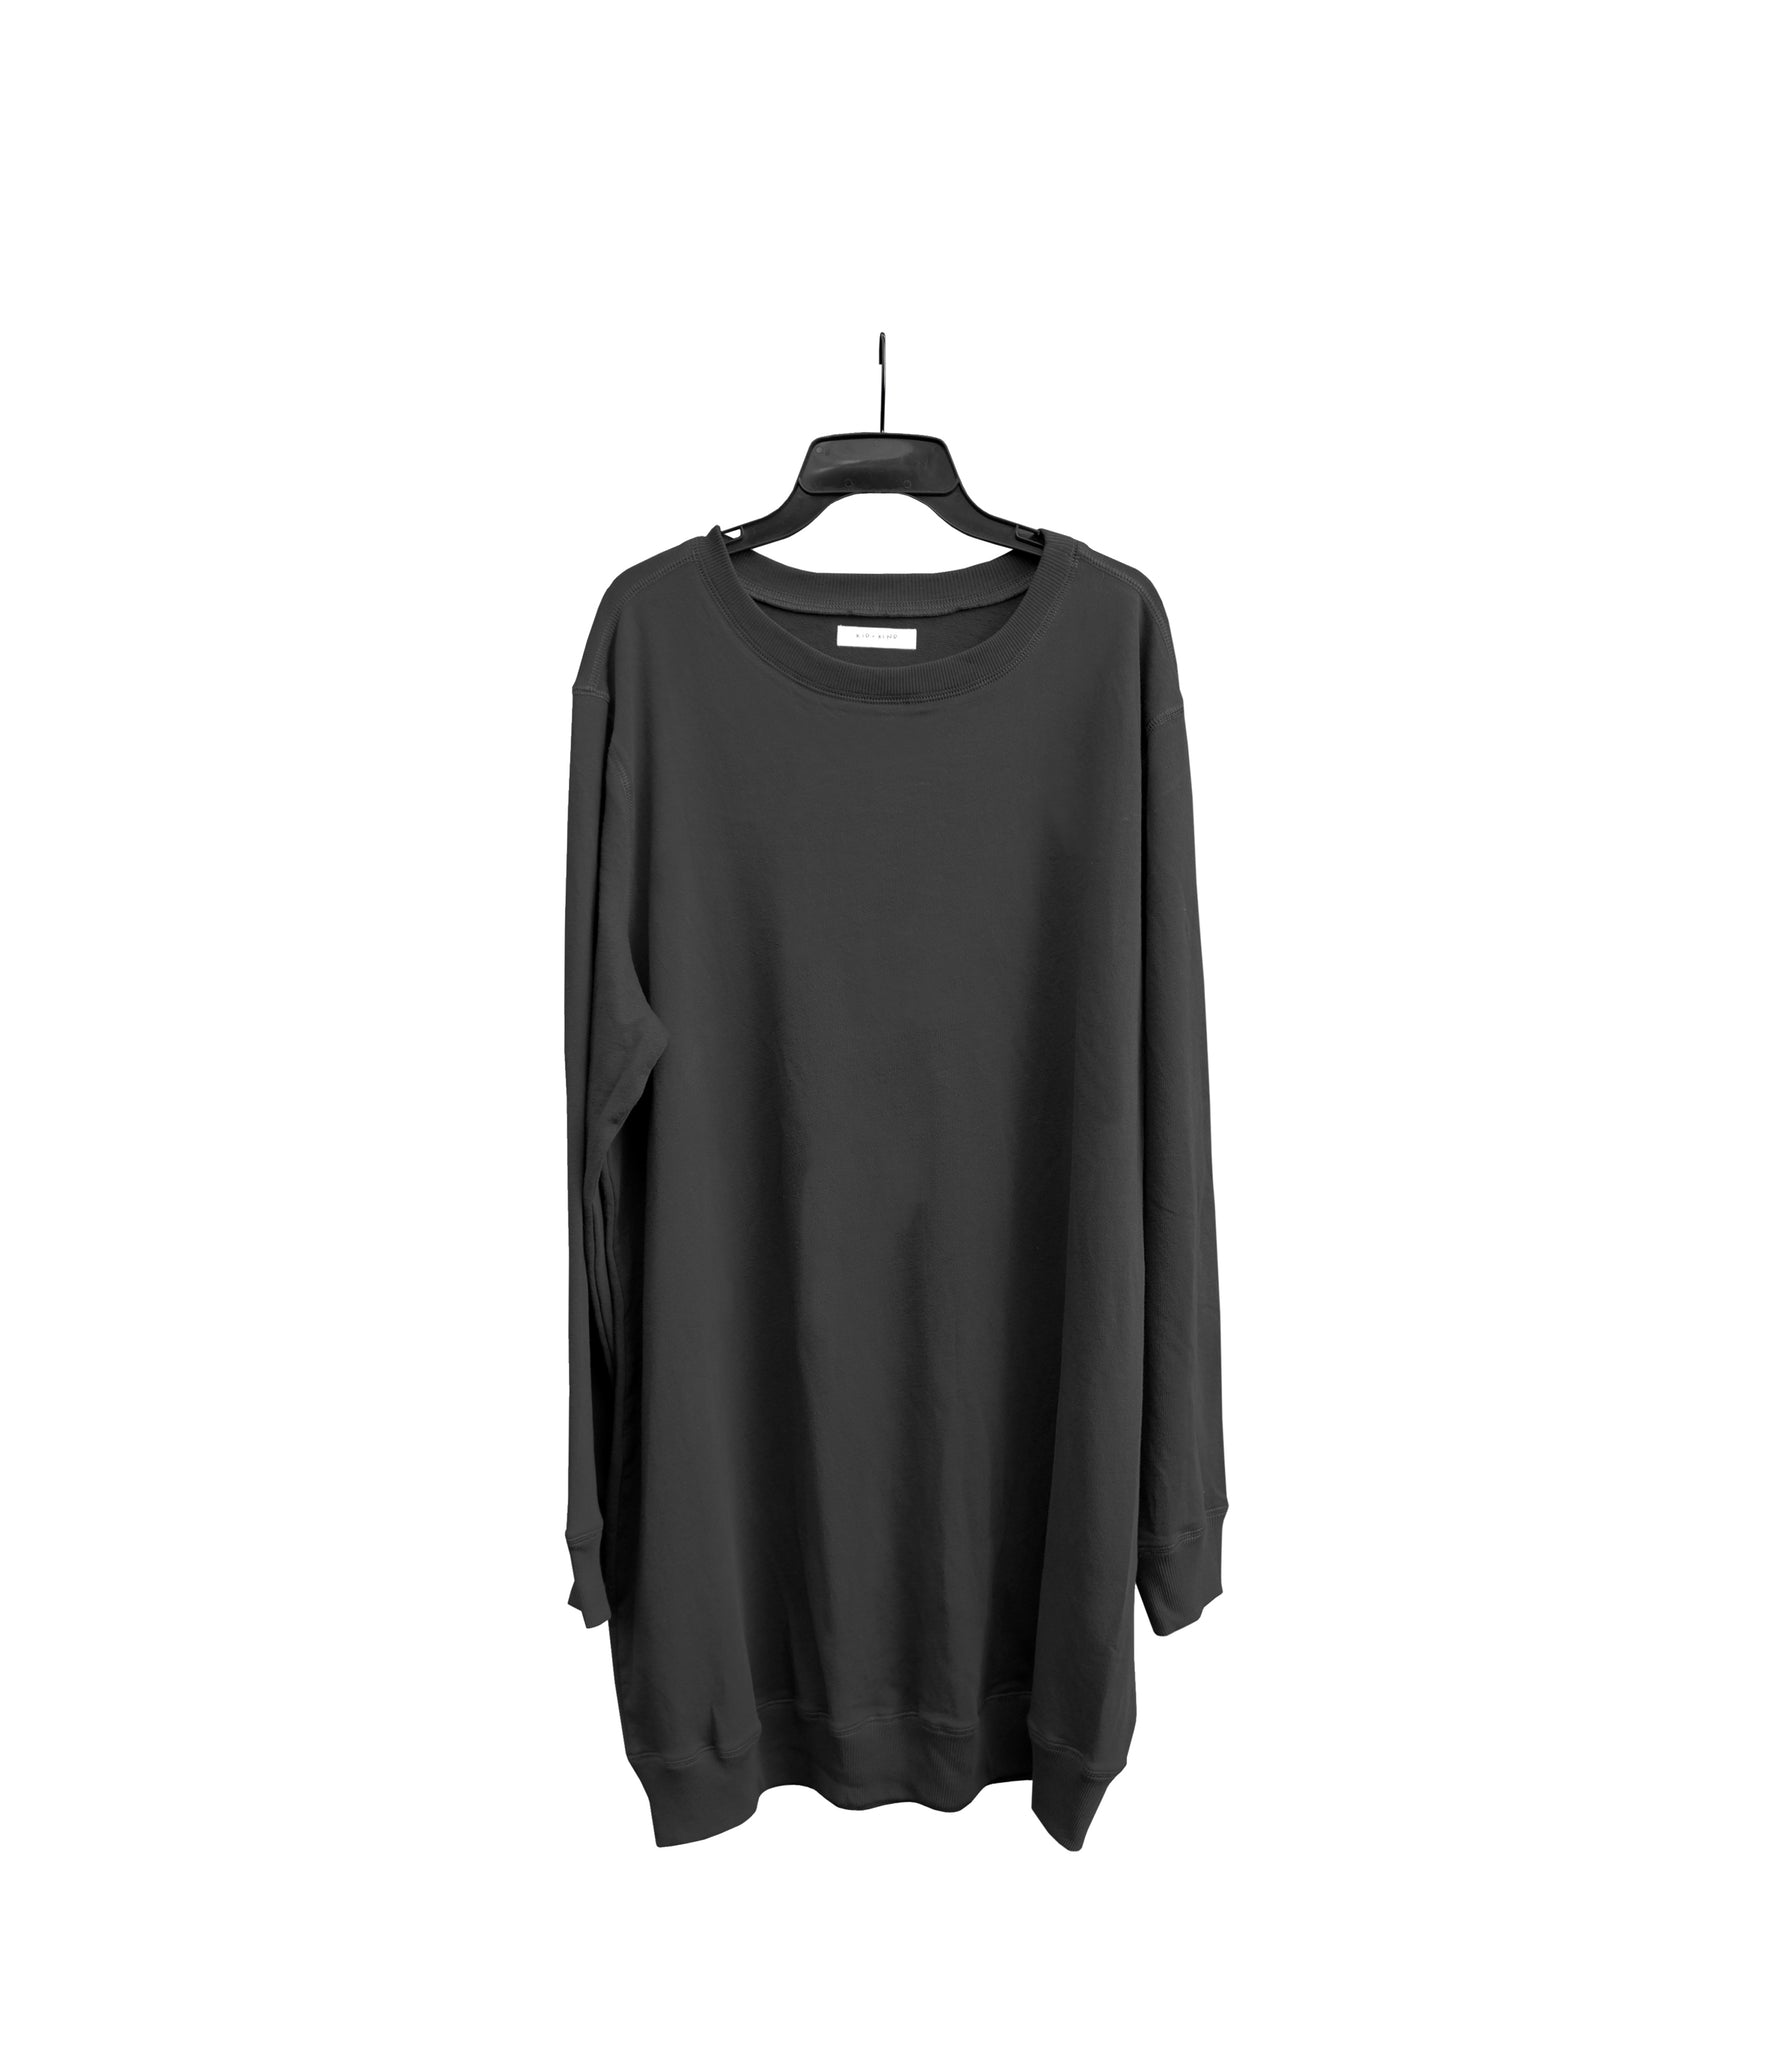 WOMEN'S CHARCOAL PULLOVER DRESS